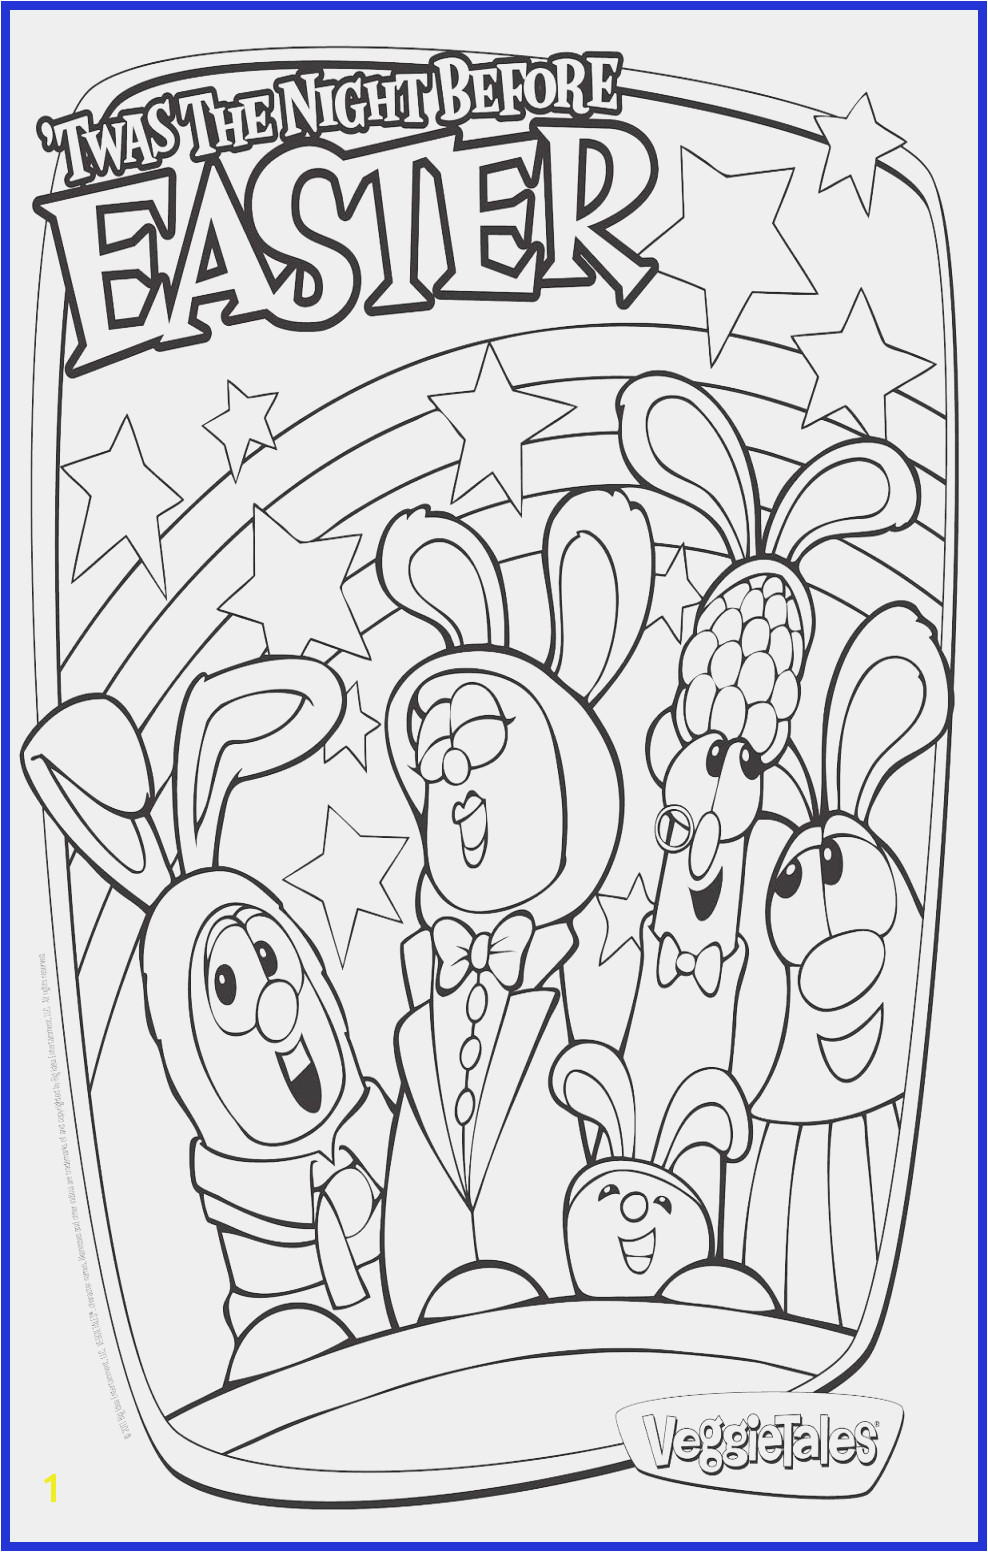 Elmo Coloring Pages Printable Free New Coloring Sheets for toddlers Printables New Best Od Dog Coloring